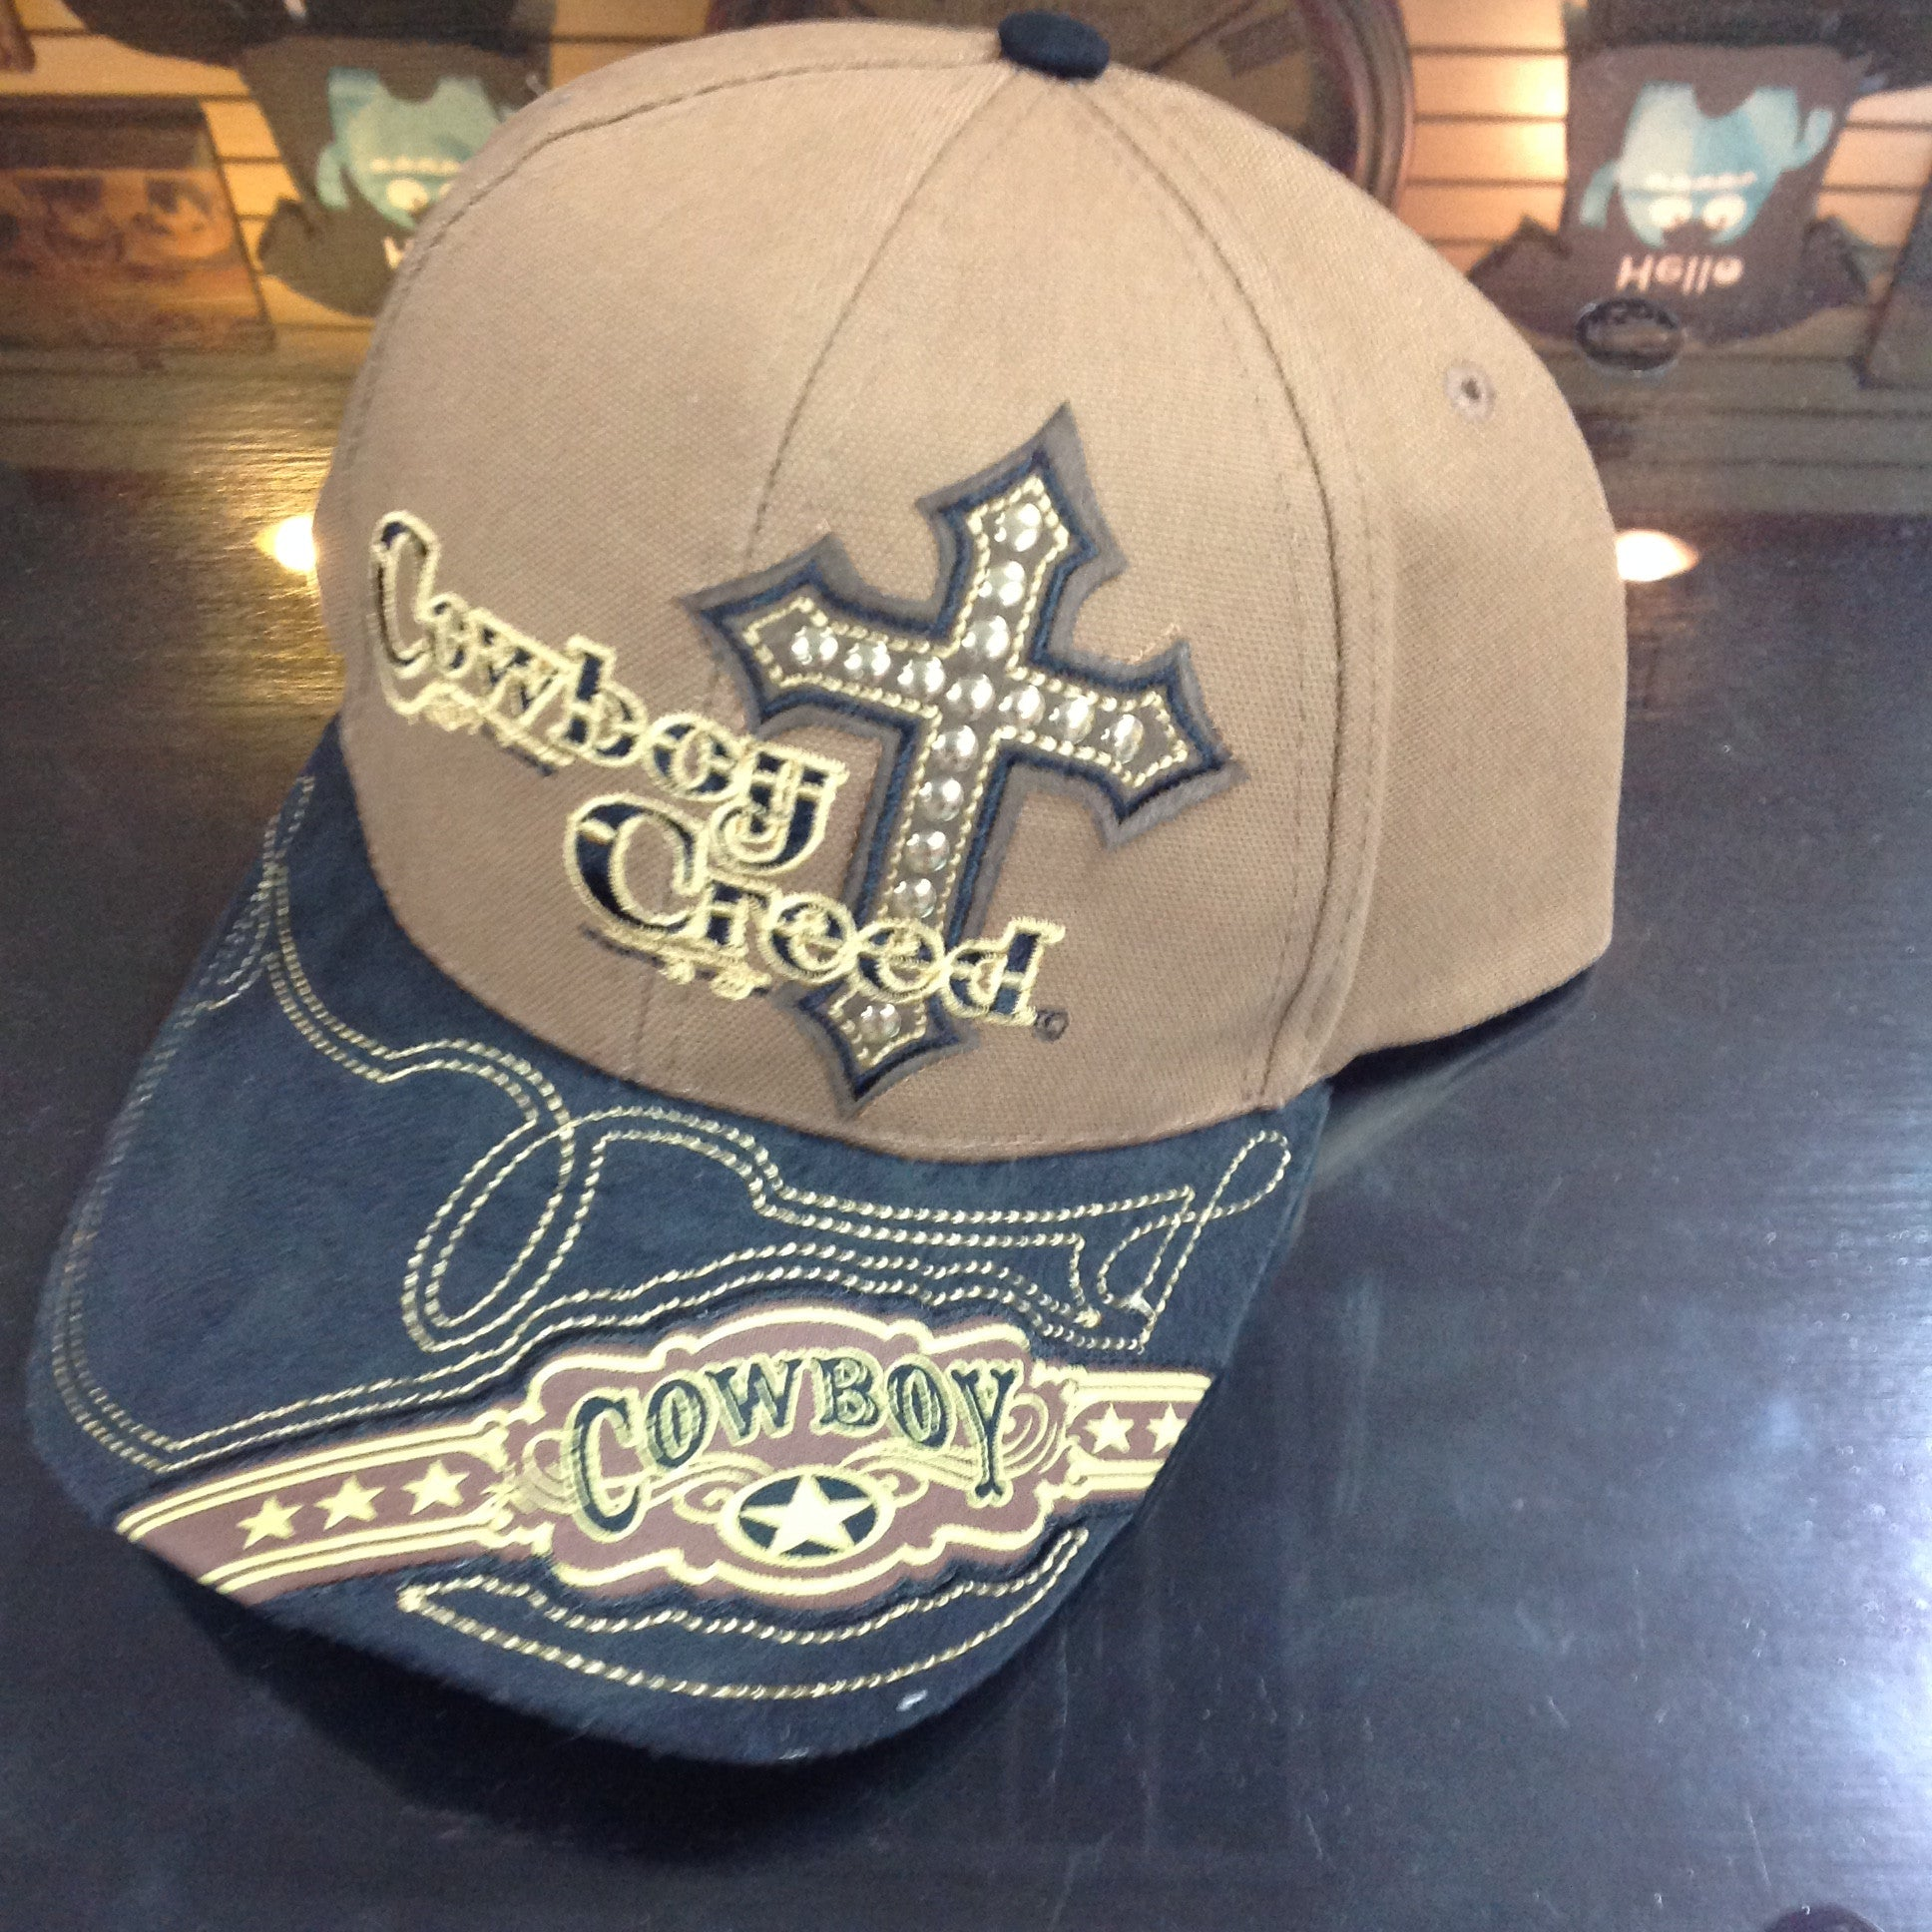 Cowboy Creed Cap